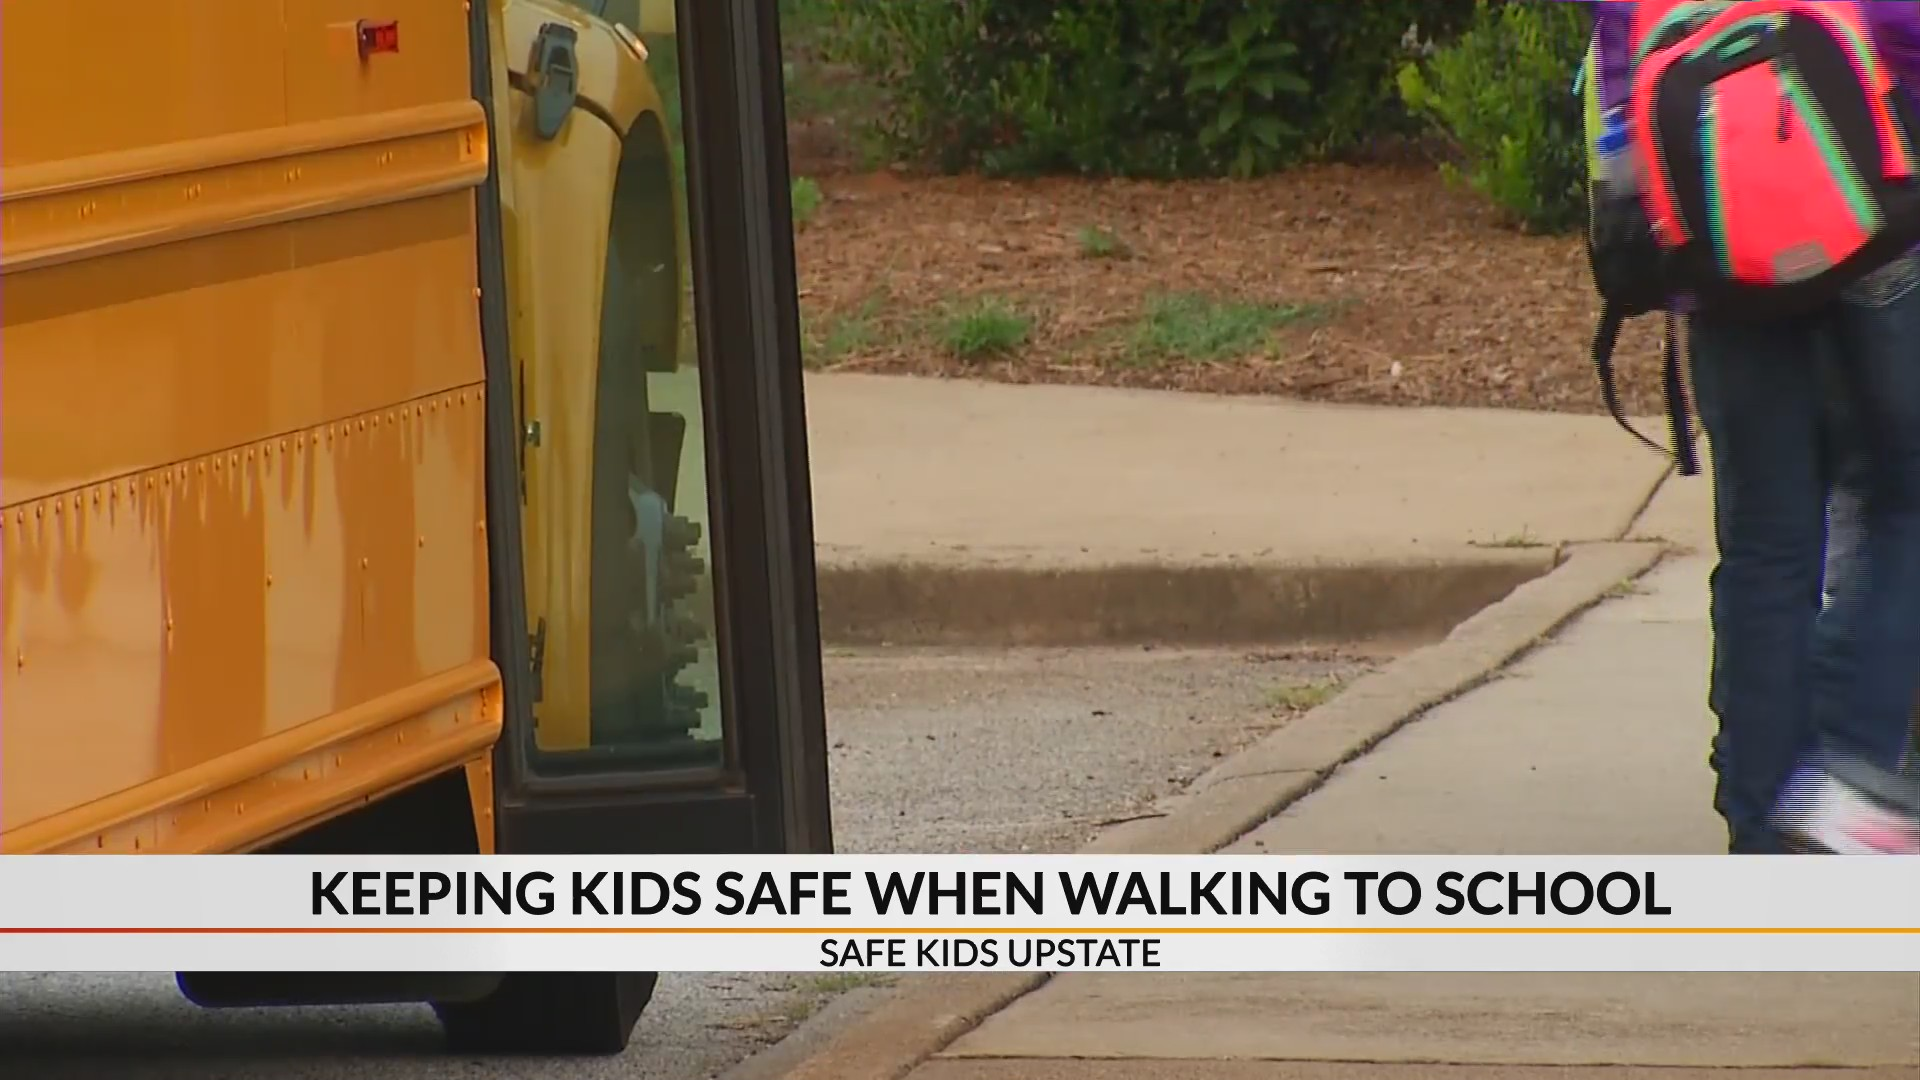 August is Back-to-School Safety Month